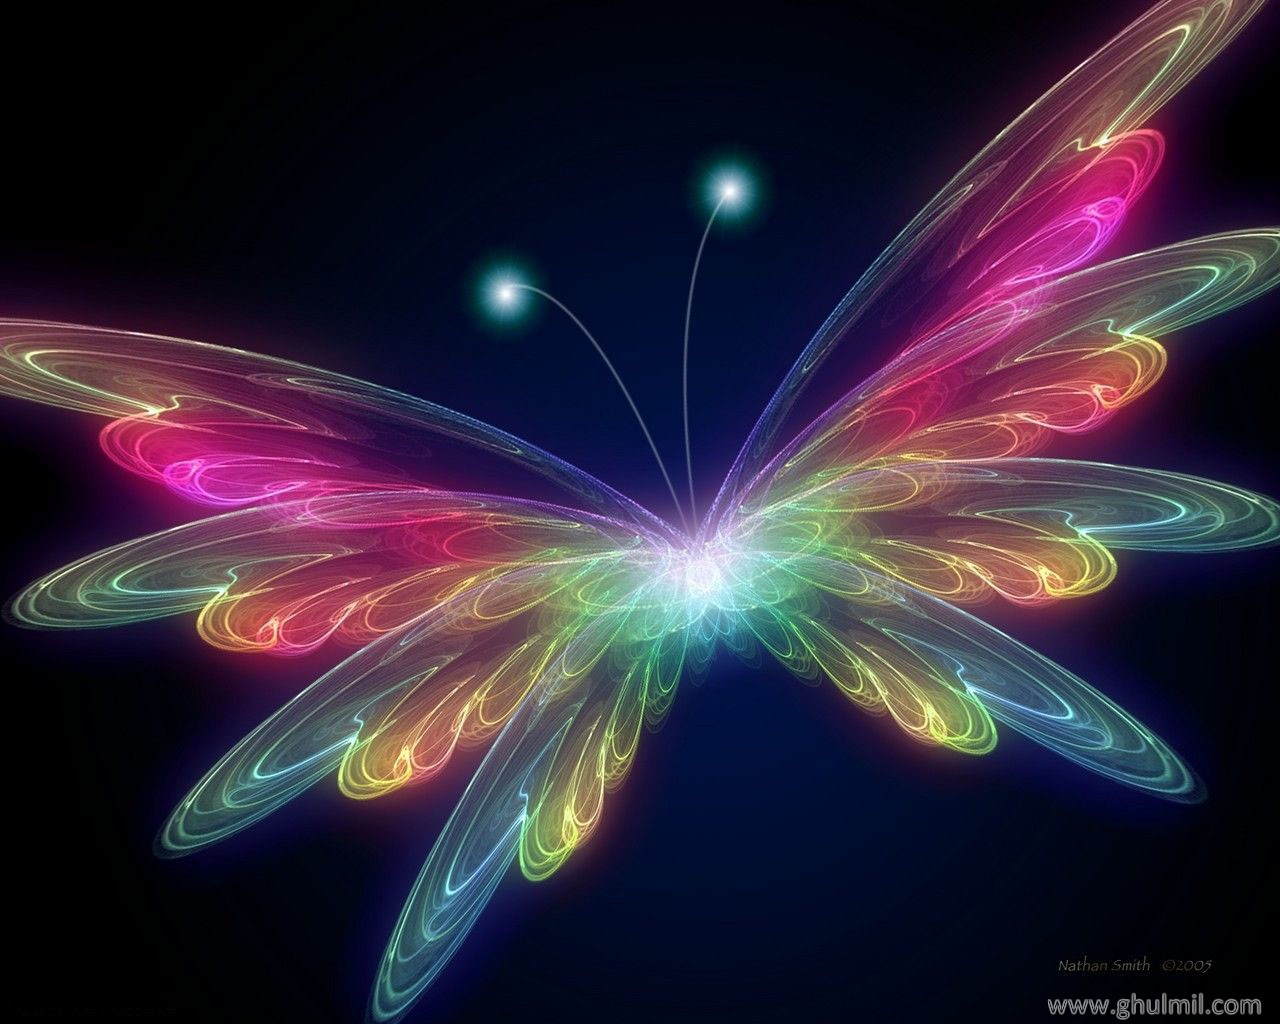 1280x1024 - Pretty Butterfly Backgrounds 41